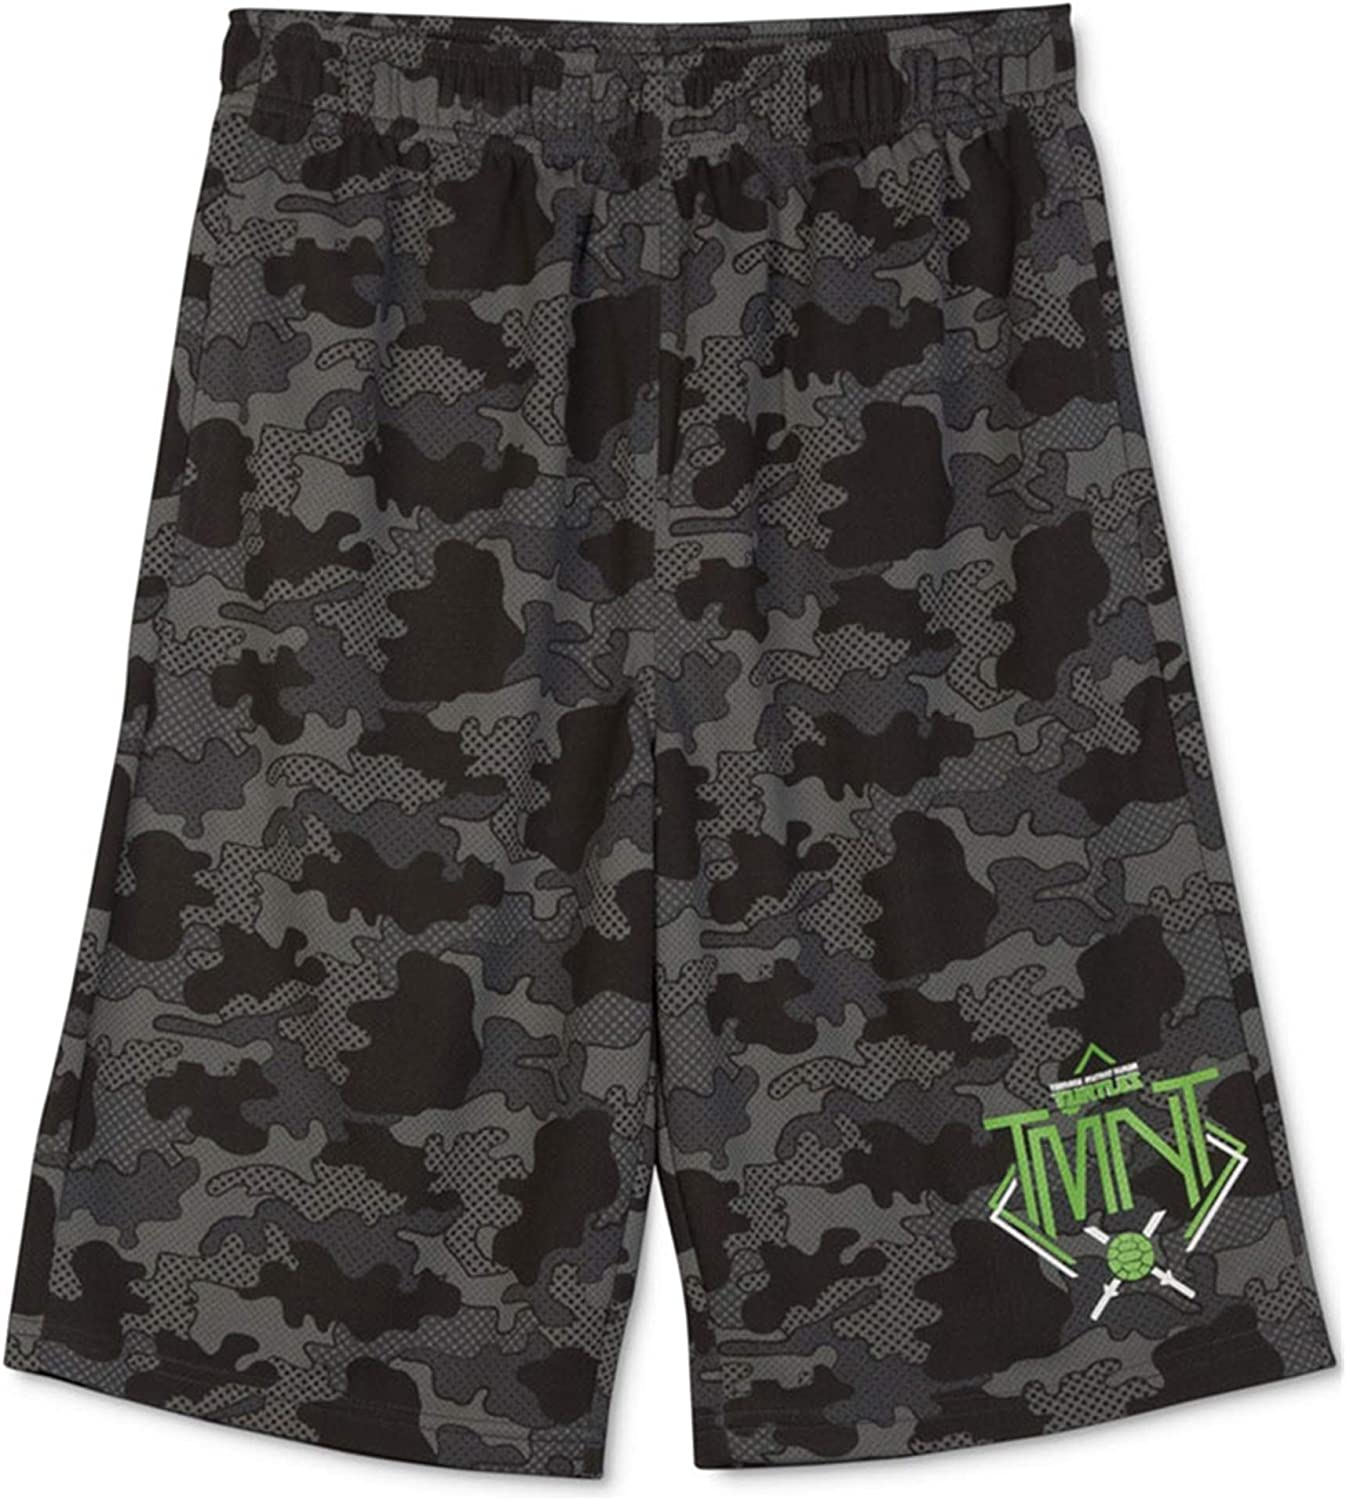 Nickelodeon Boys TMNT Camo Athletic Workout Shorts, Grey, M (12)